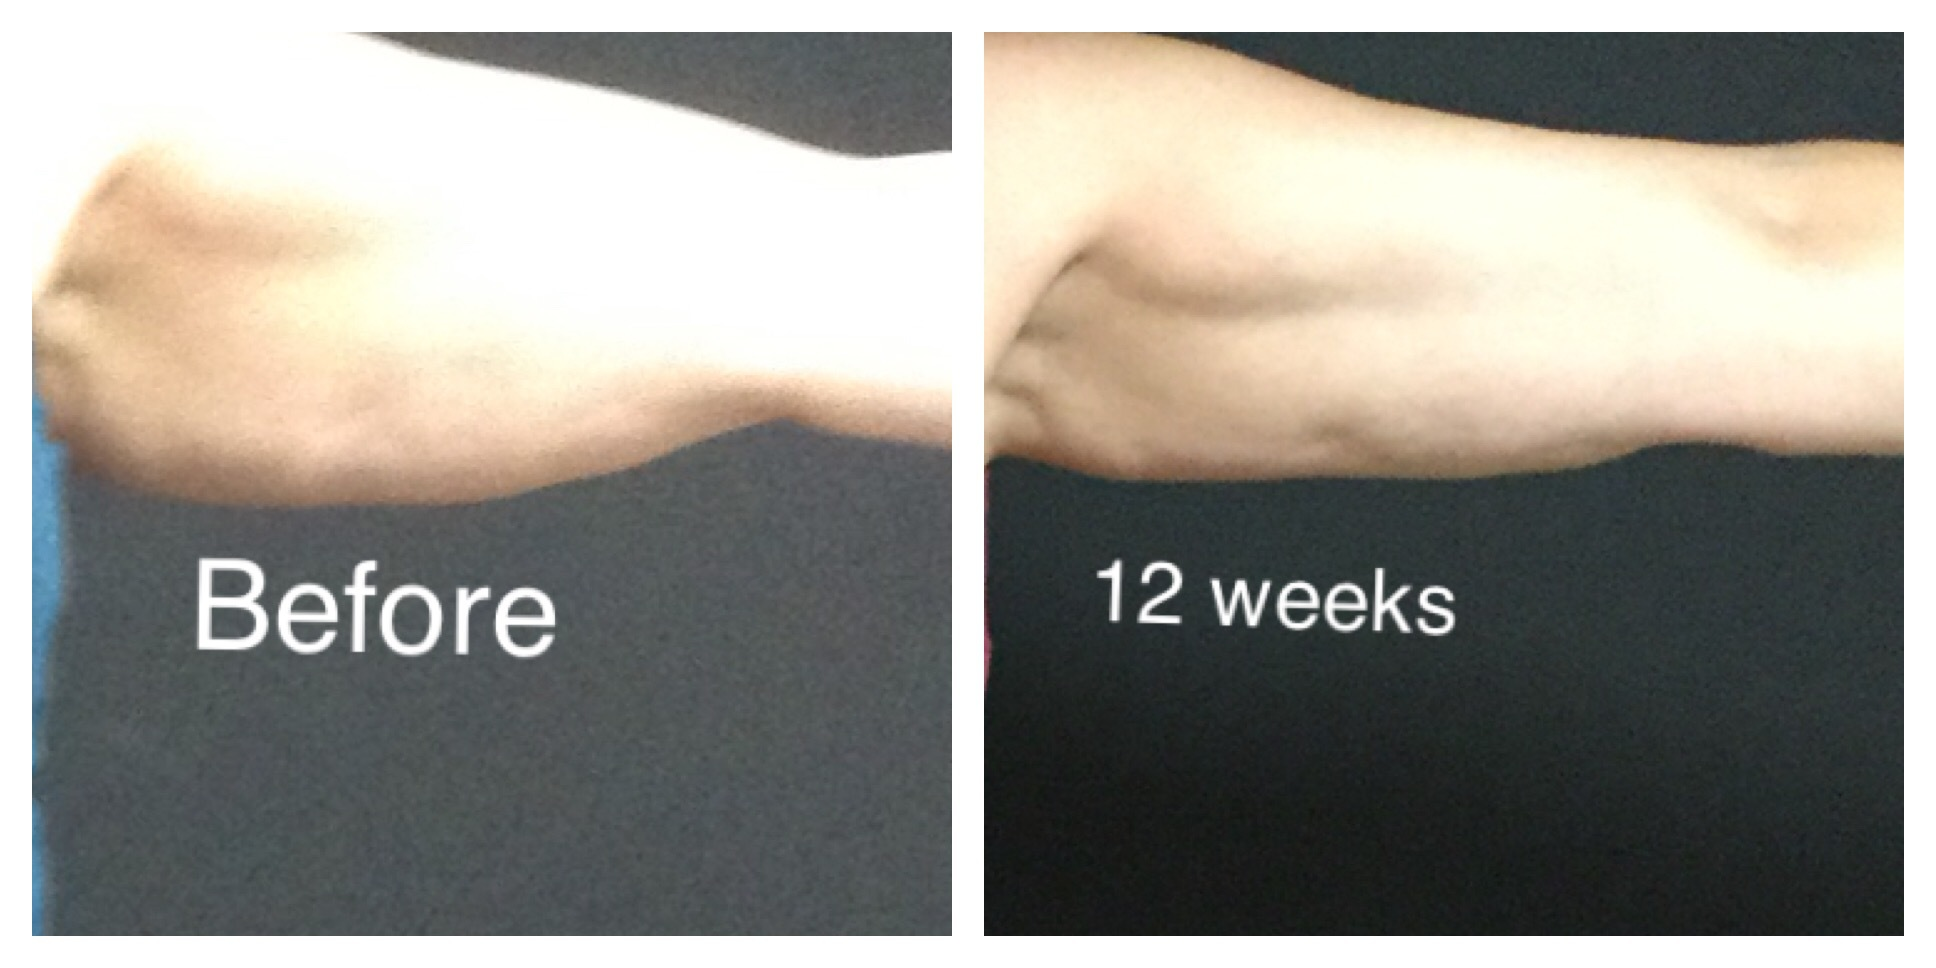 Man's Arm Before and After